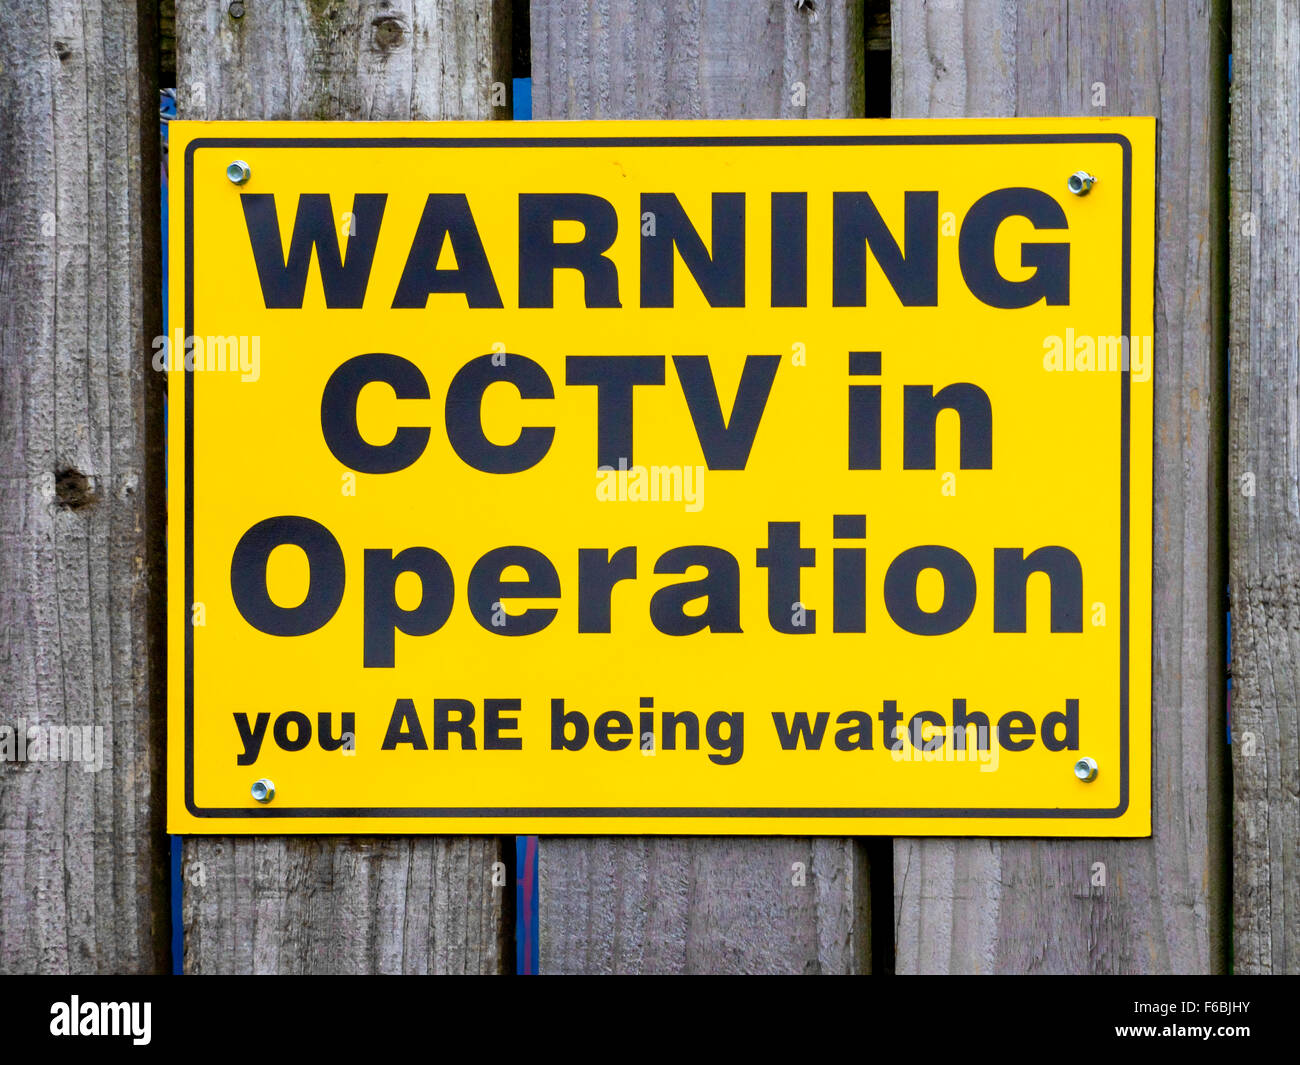 Notice warning of the presence of CCTV surveillance cameras Warning CCTV in operation you are being watched - Stock Image